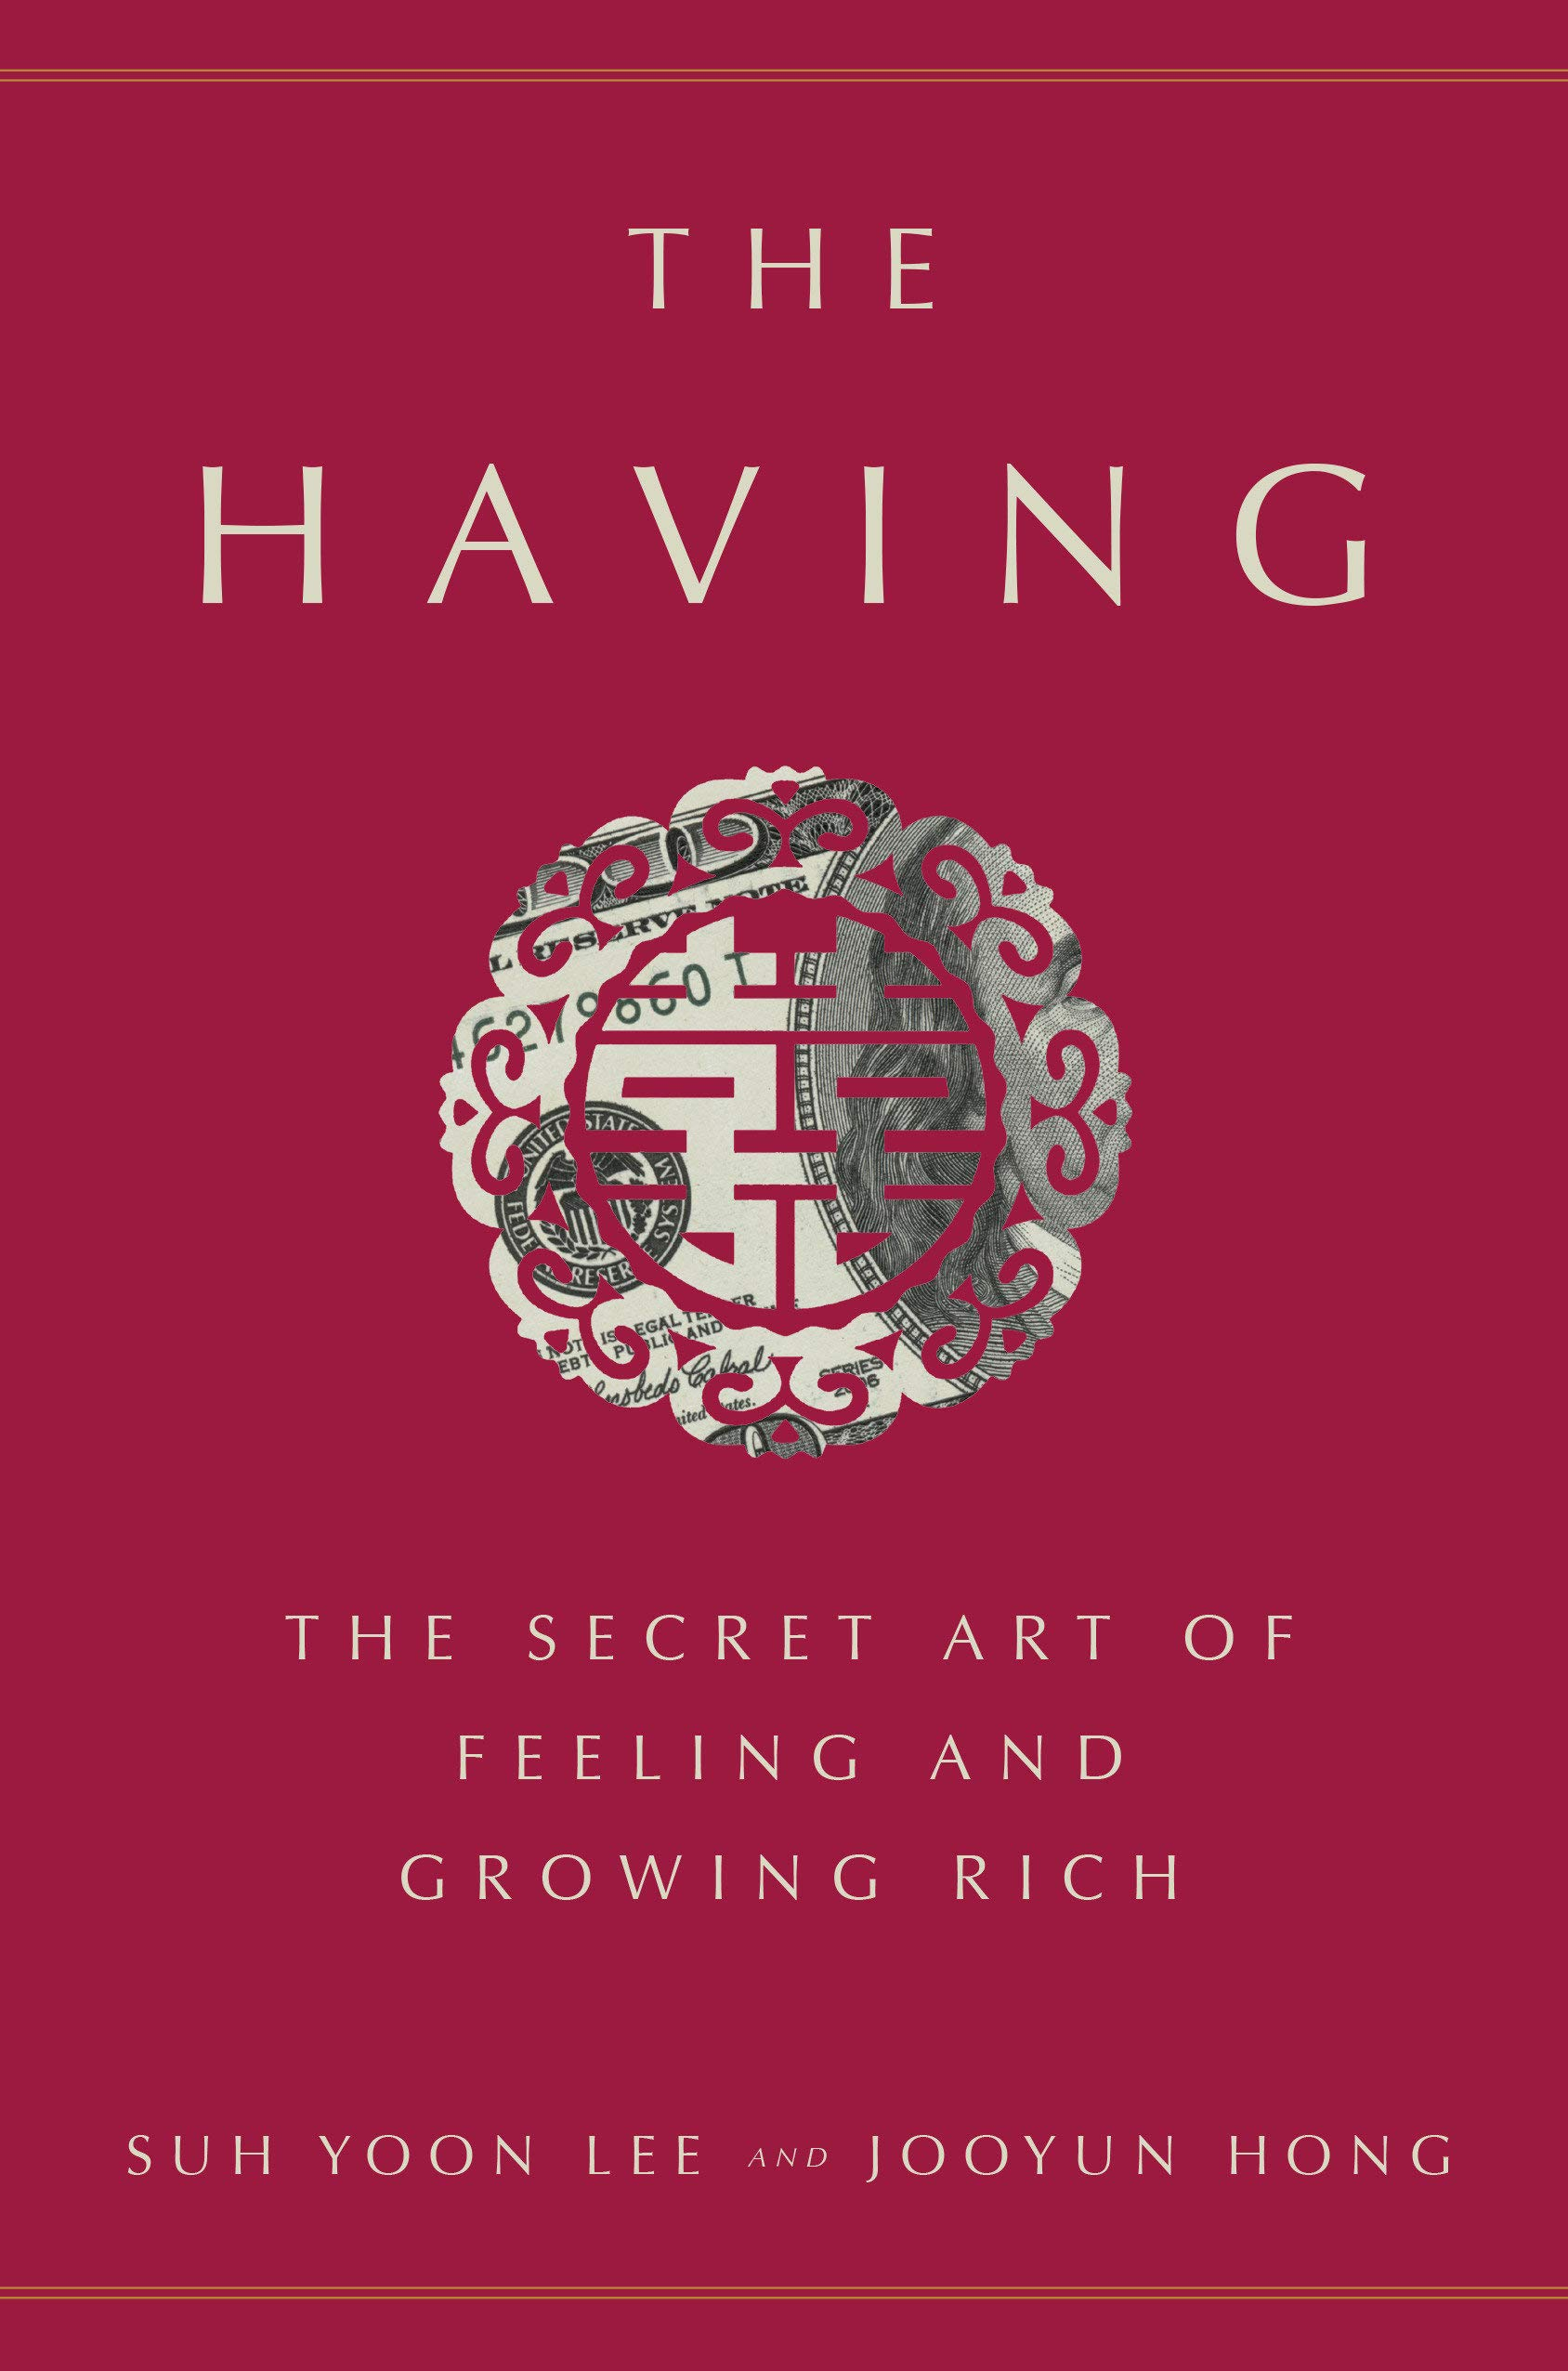 The Having The Secret Art Of Feeling And Growing Rich Lee Suh Yoon Hong Jooyun 9781524763411 Amazon Com Books